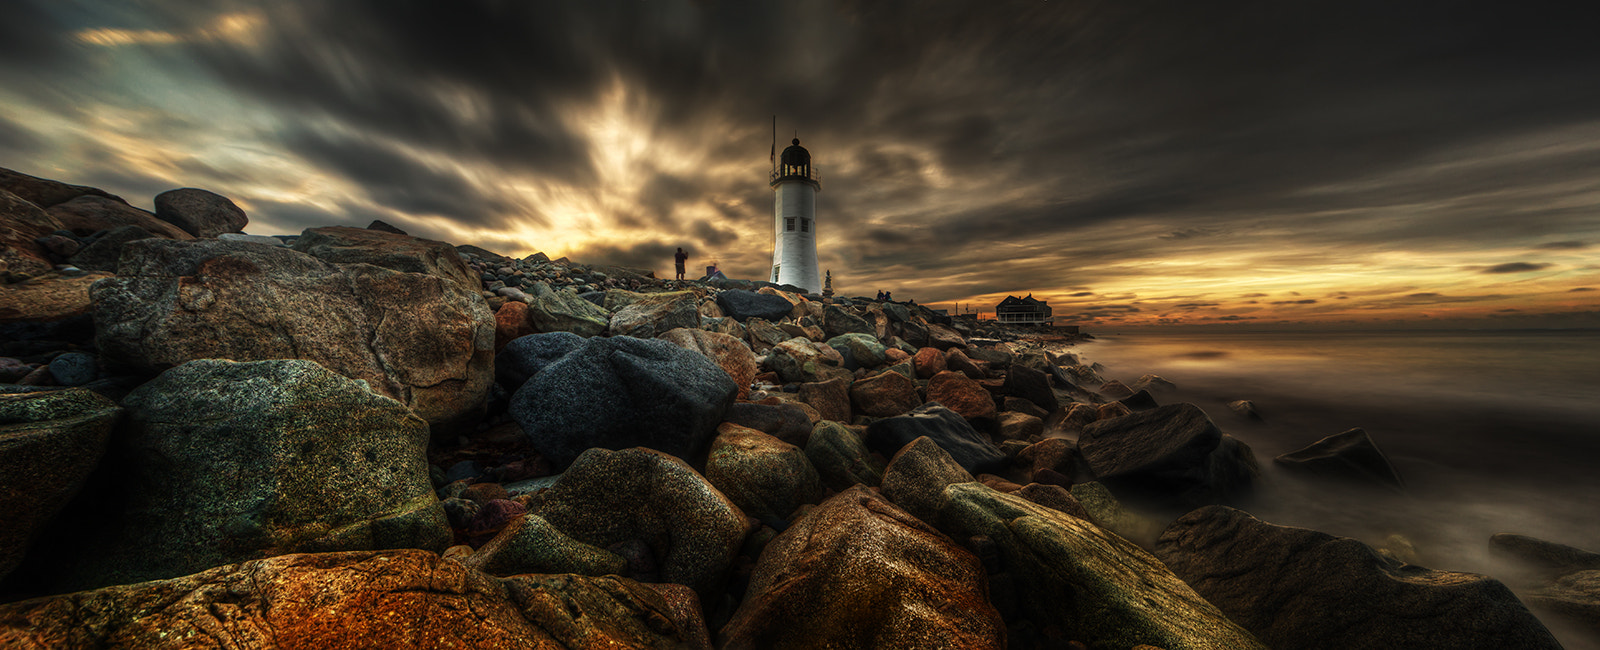 Photo Sunrise at Scituate par Edward Reese on 500px